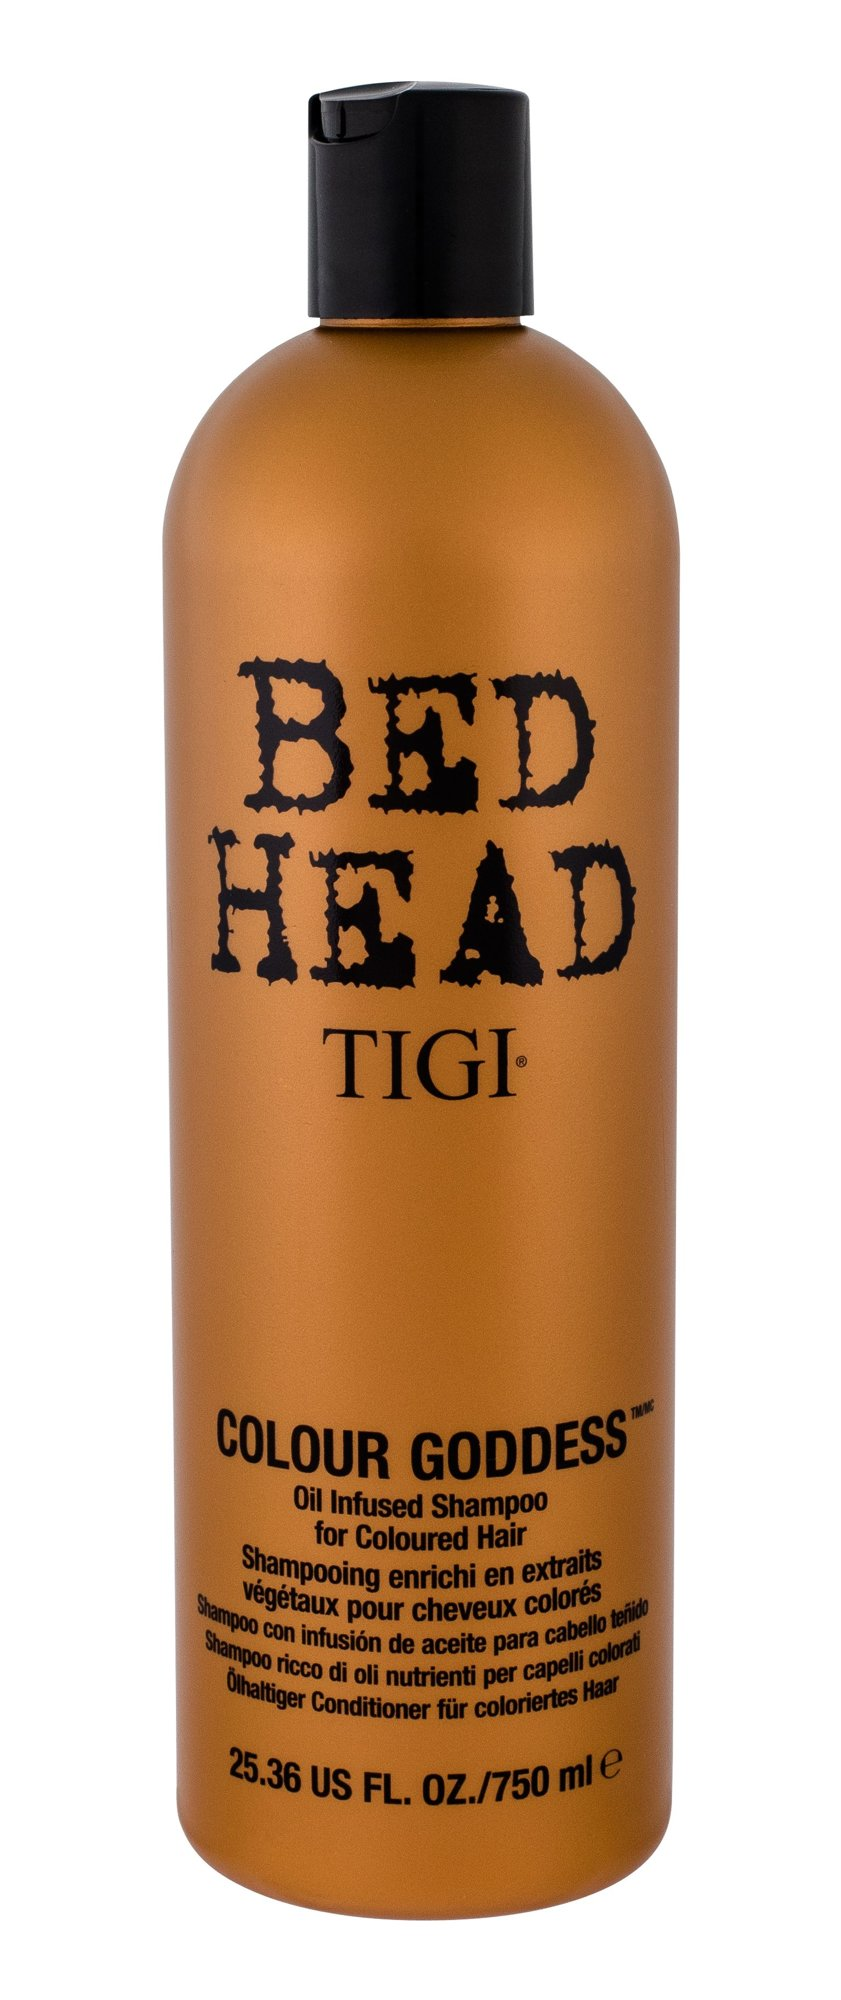 Tigi Bed Head Colour Goddess Cosmetic 750ml